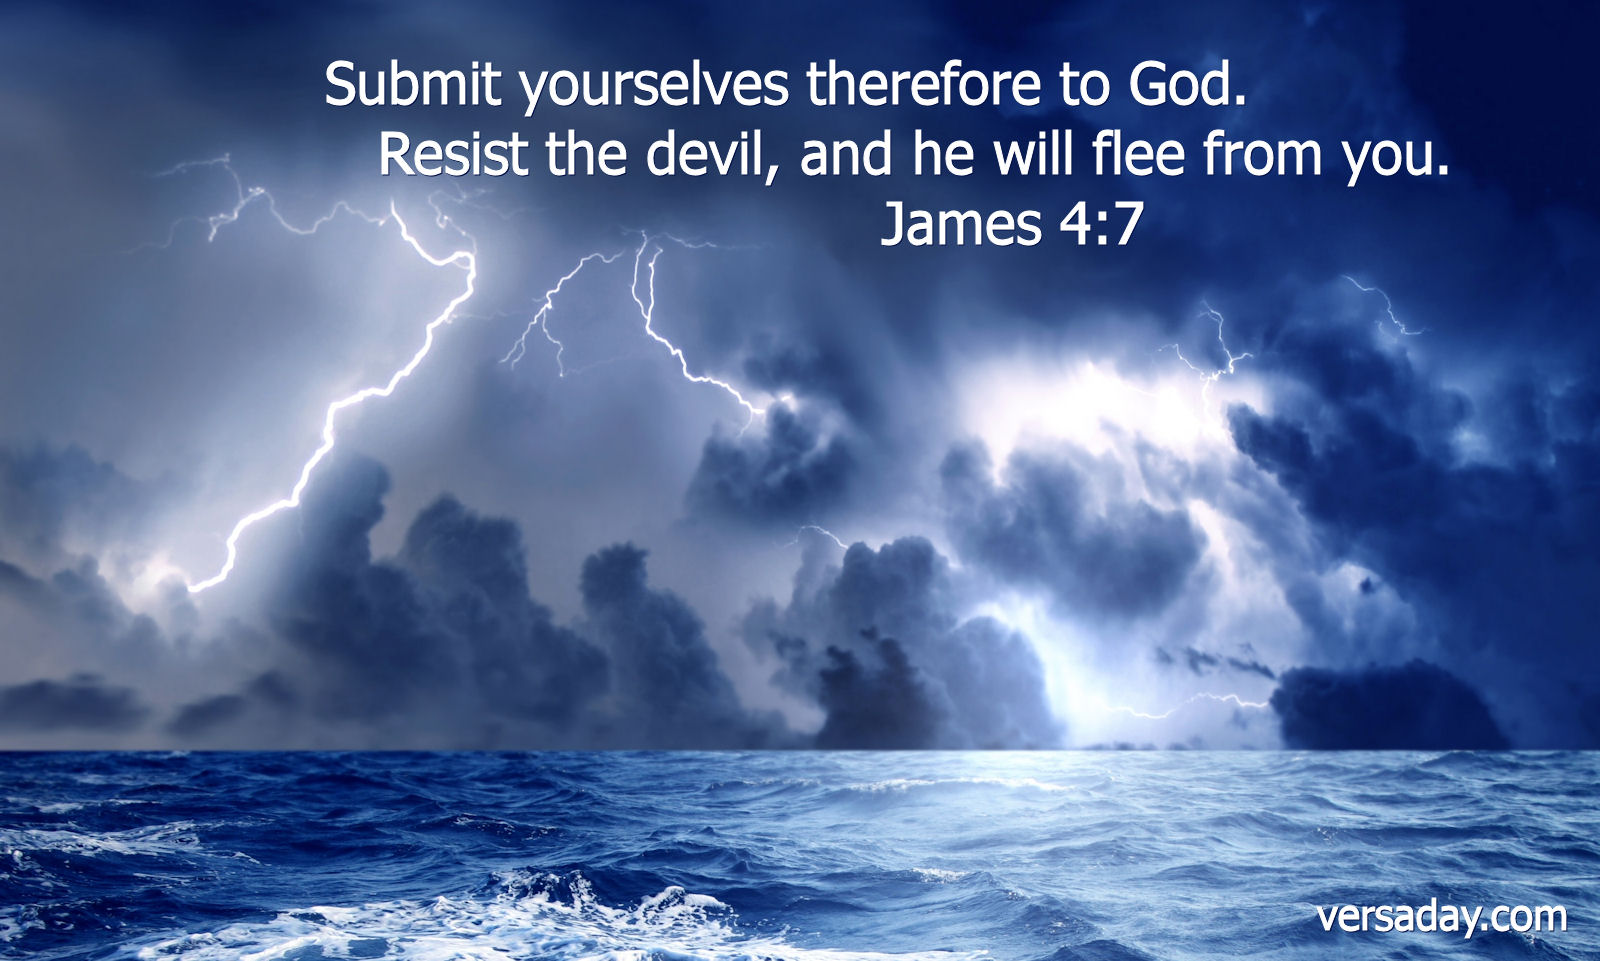 James 4:7 - Verse for May 15